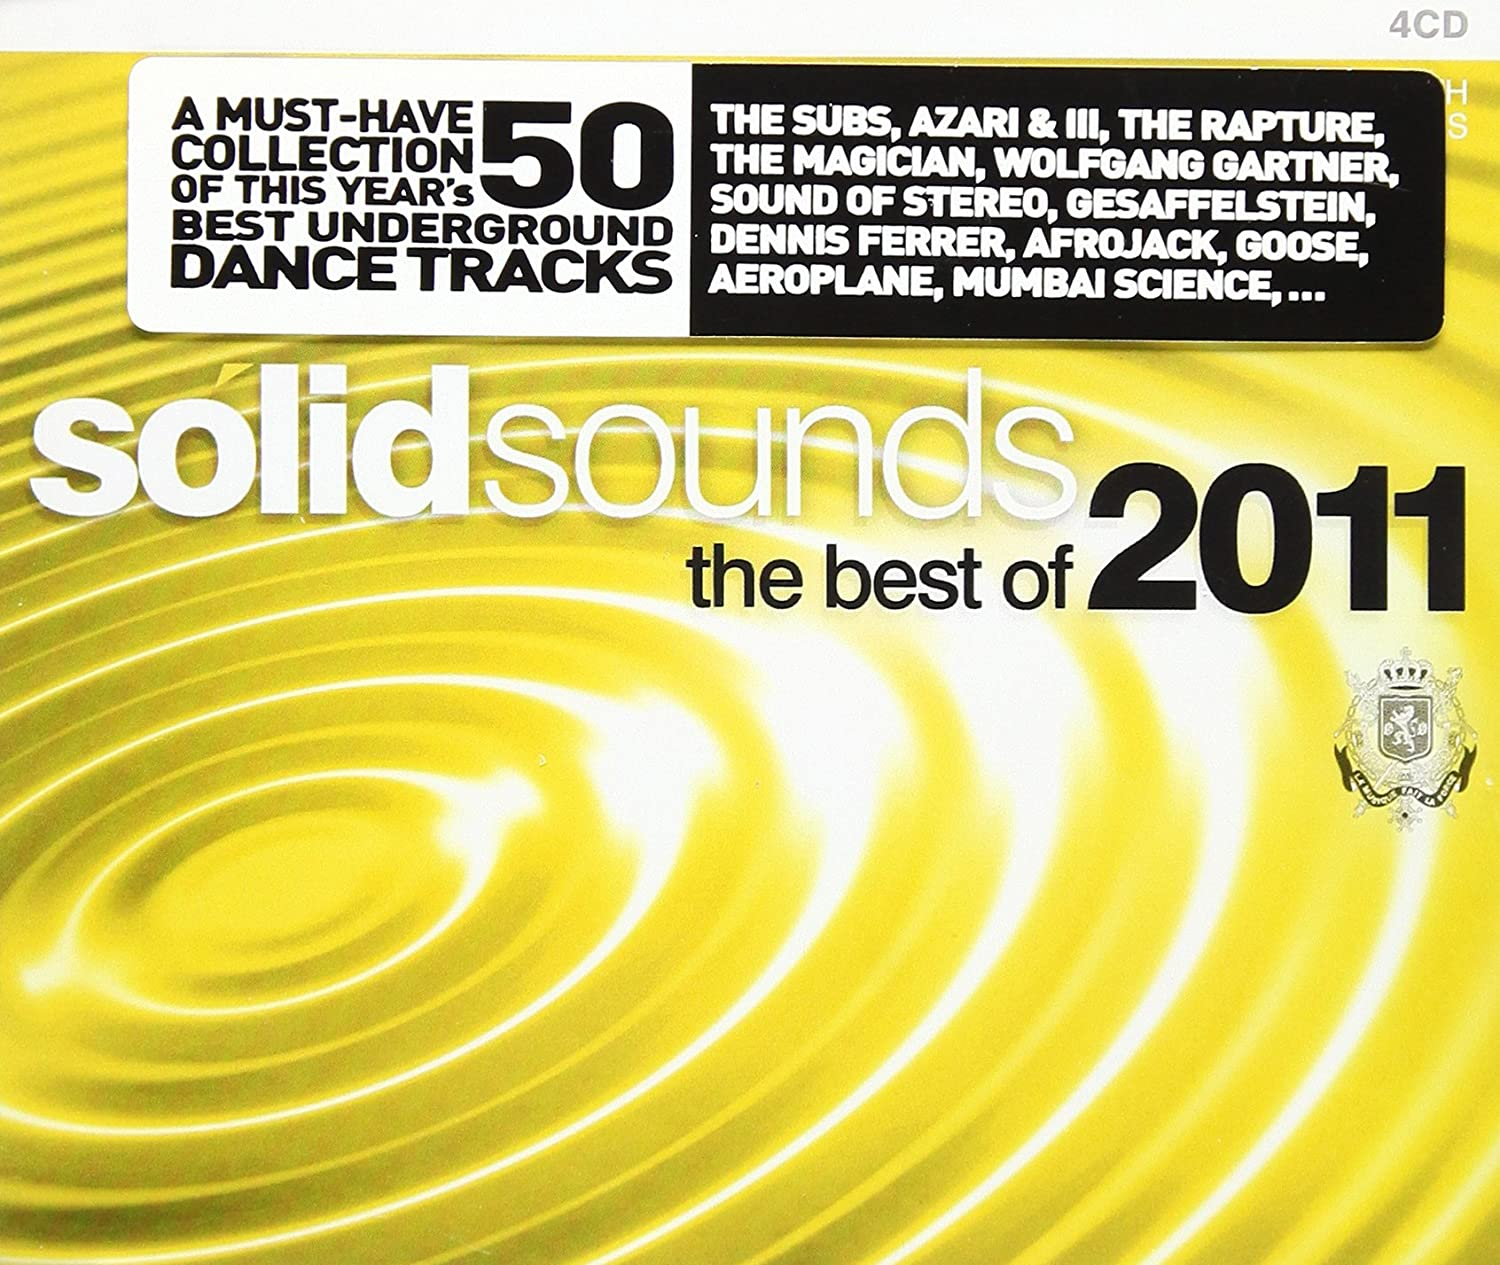 Solid Sounds Best of 2011                                                                                                                                                                                                                                                                                                                                                                                                <span class=